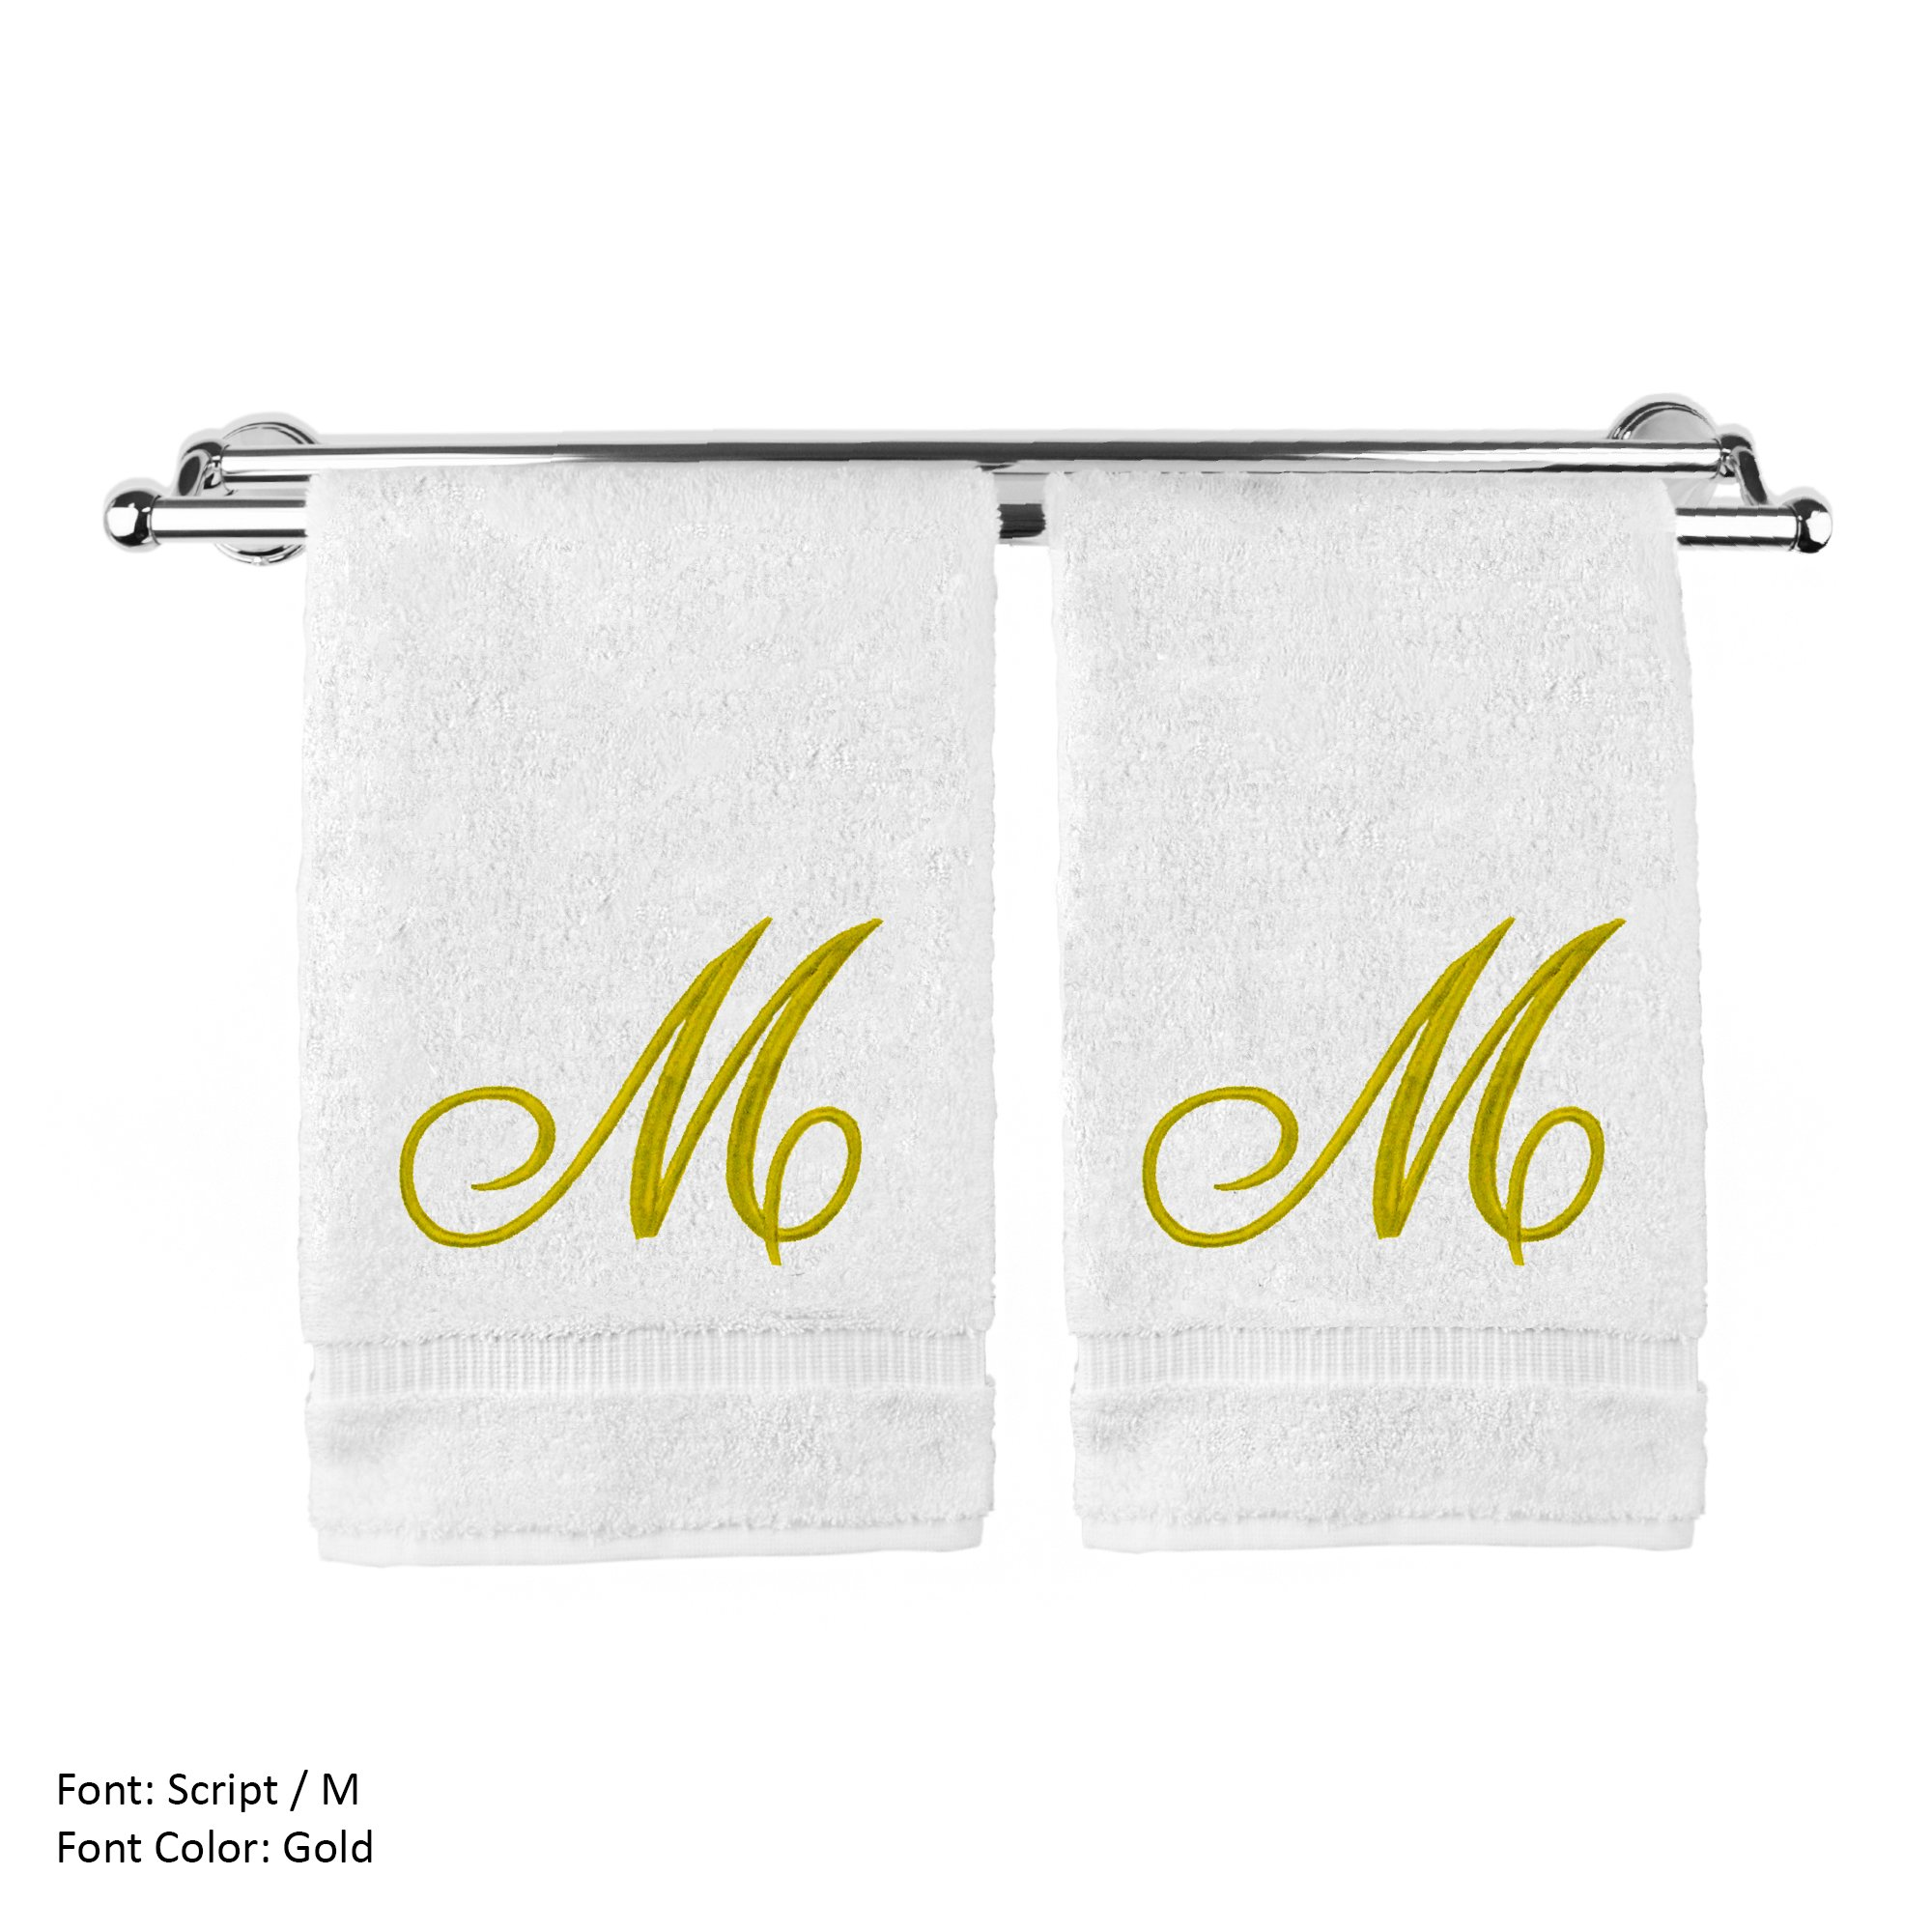 Monogrammed Hand Towel, Personalized Gift, 16 x 30 Inches - Set of 2 - Gold Embroidered Towel - Extra Absorbent 100% Turkish Cotton- Soft Terry Finish - For Bathroom, Kitchen and Spa- Script M White